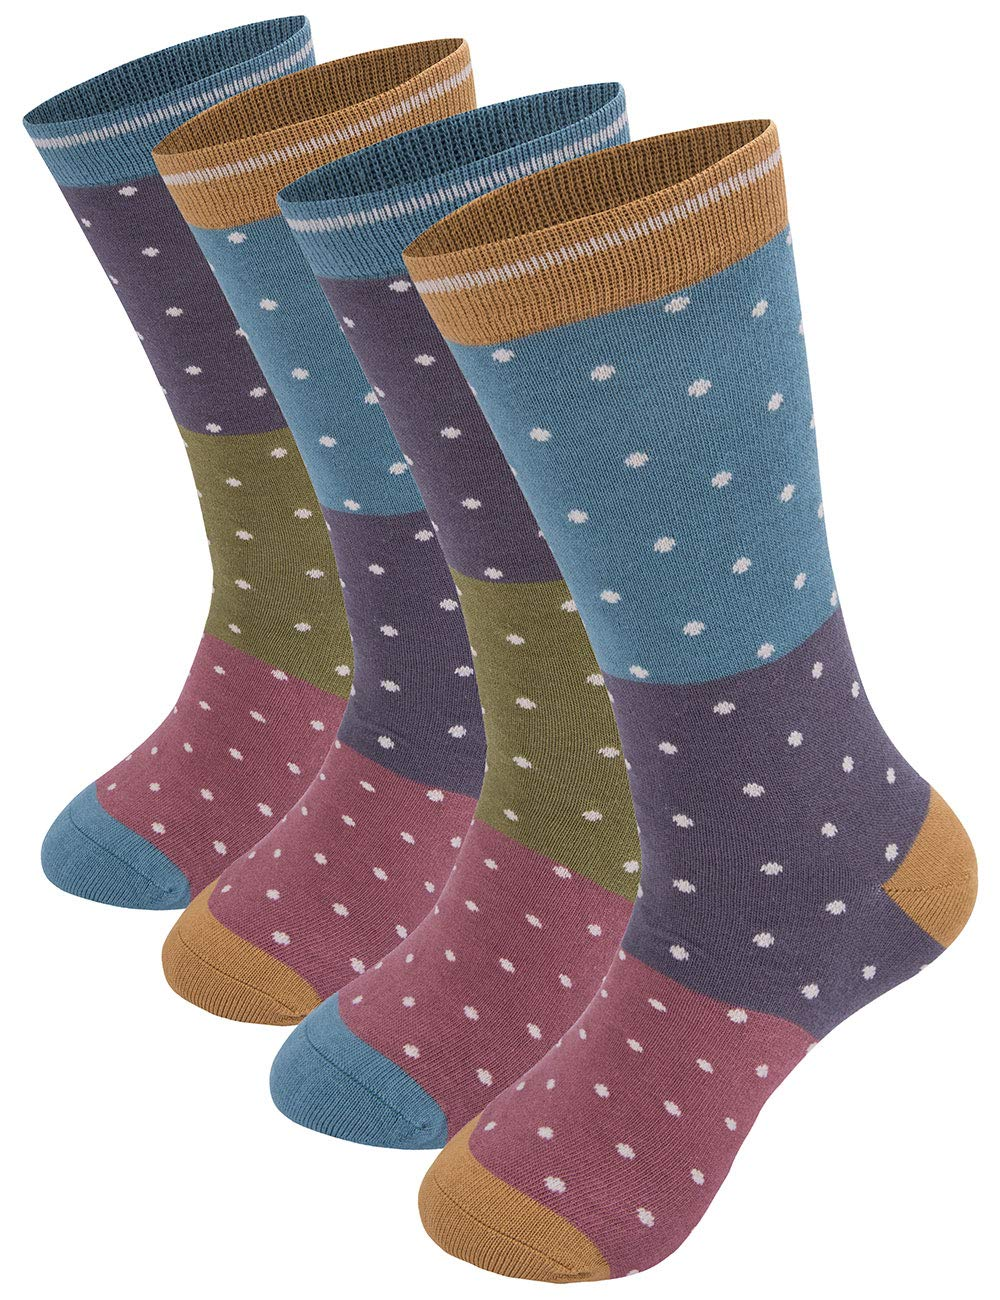 JING Women's Bamboo Fiber Crew Socks Flower Patterned Design with Gift Box (4 Pairs) (Dots)